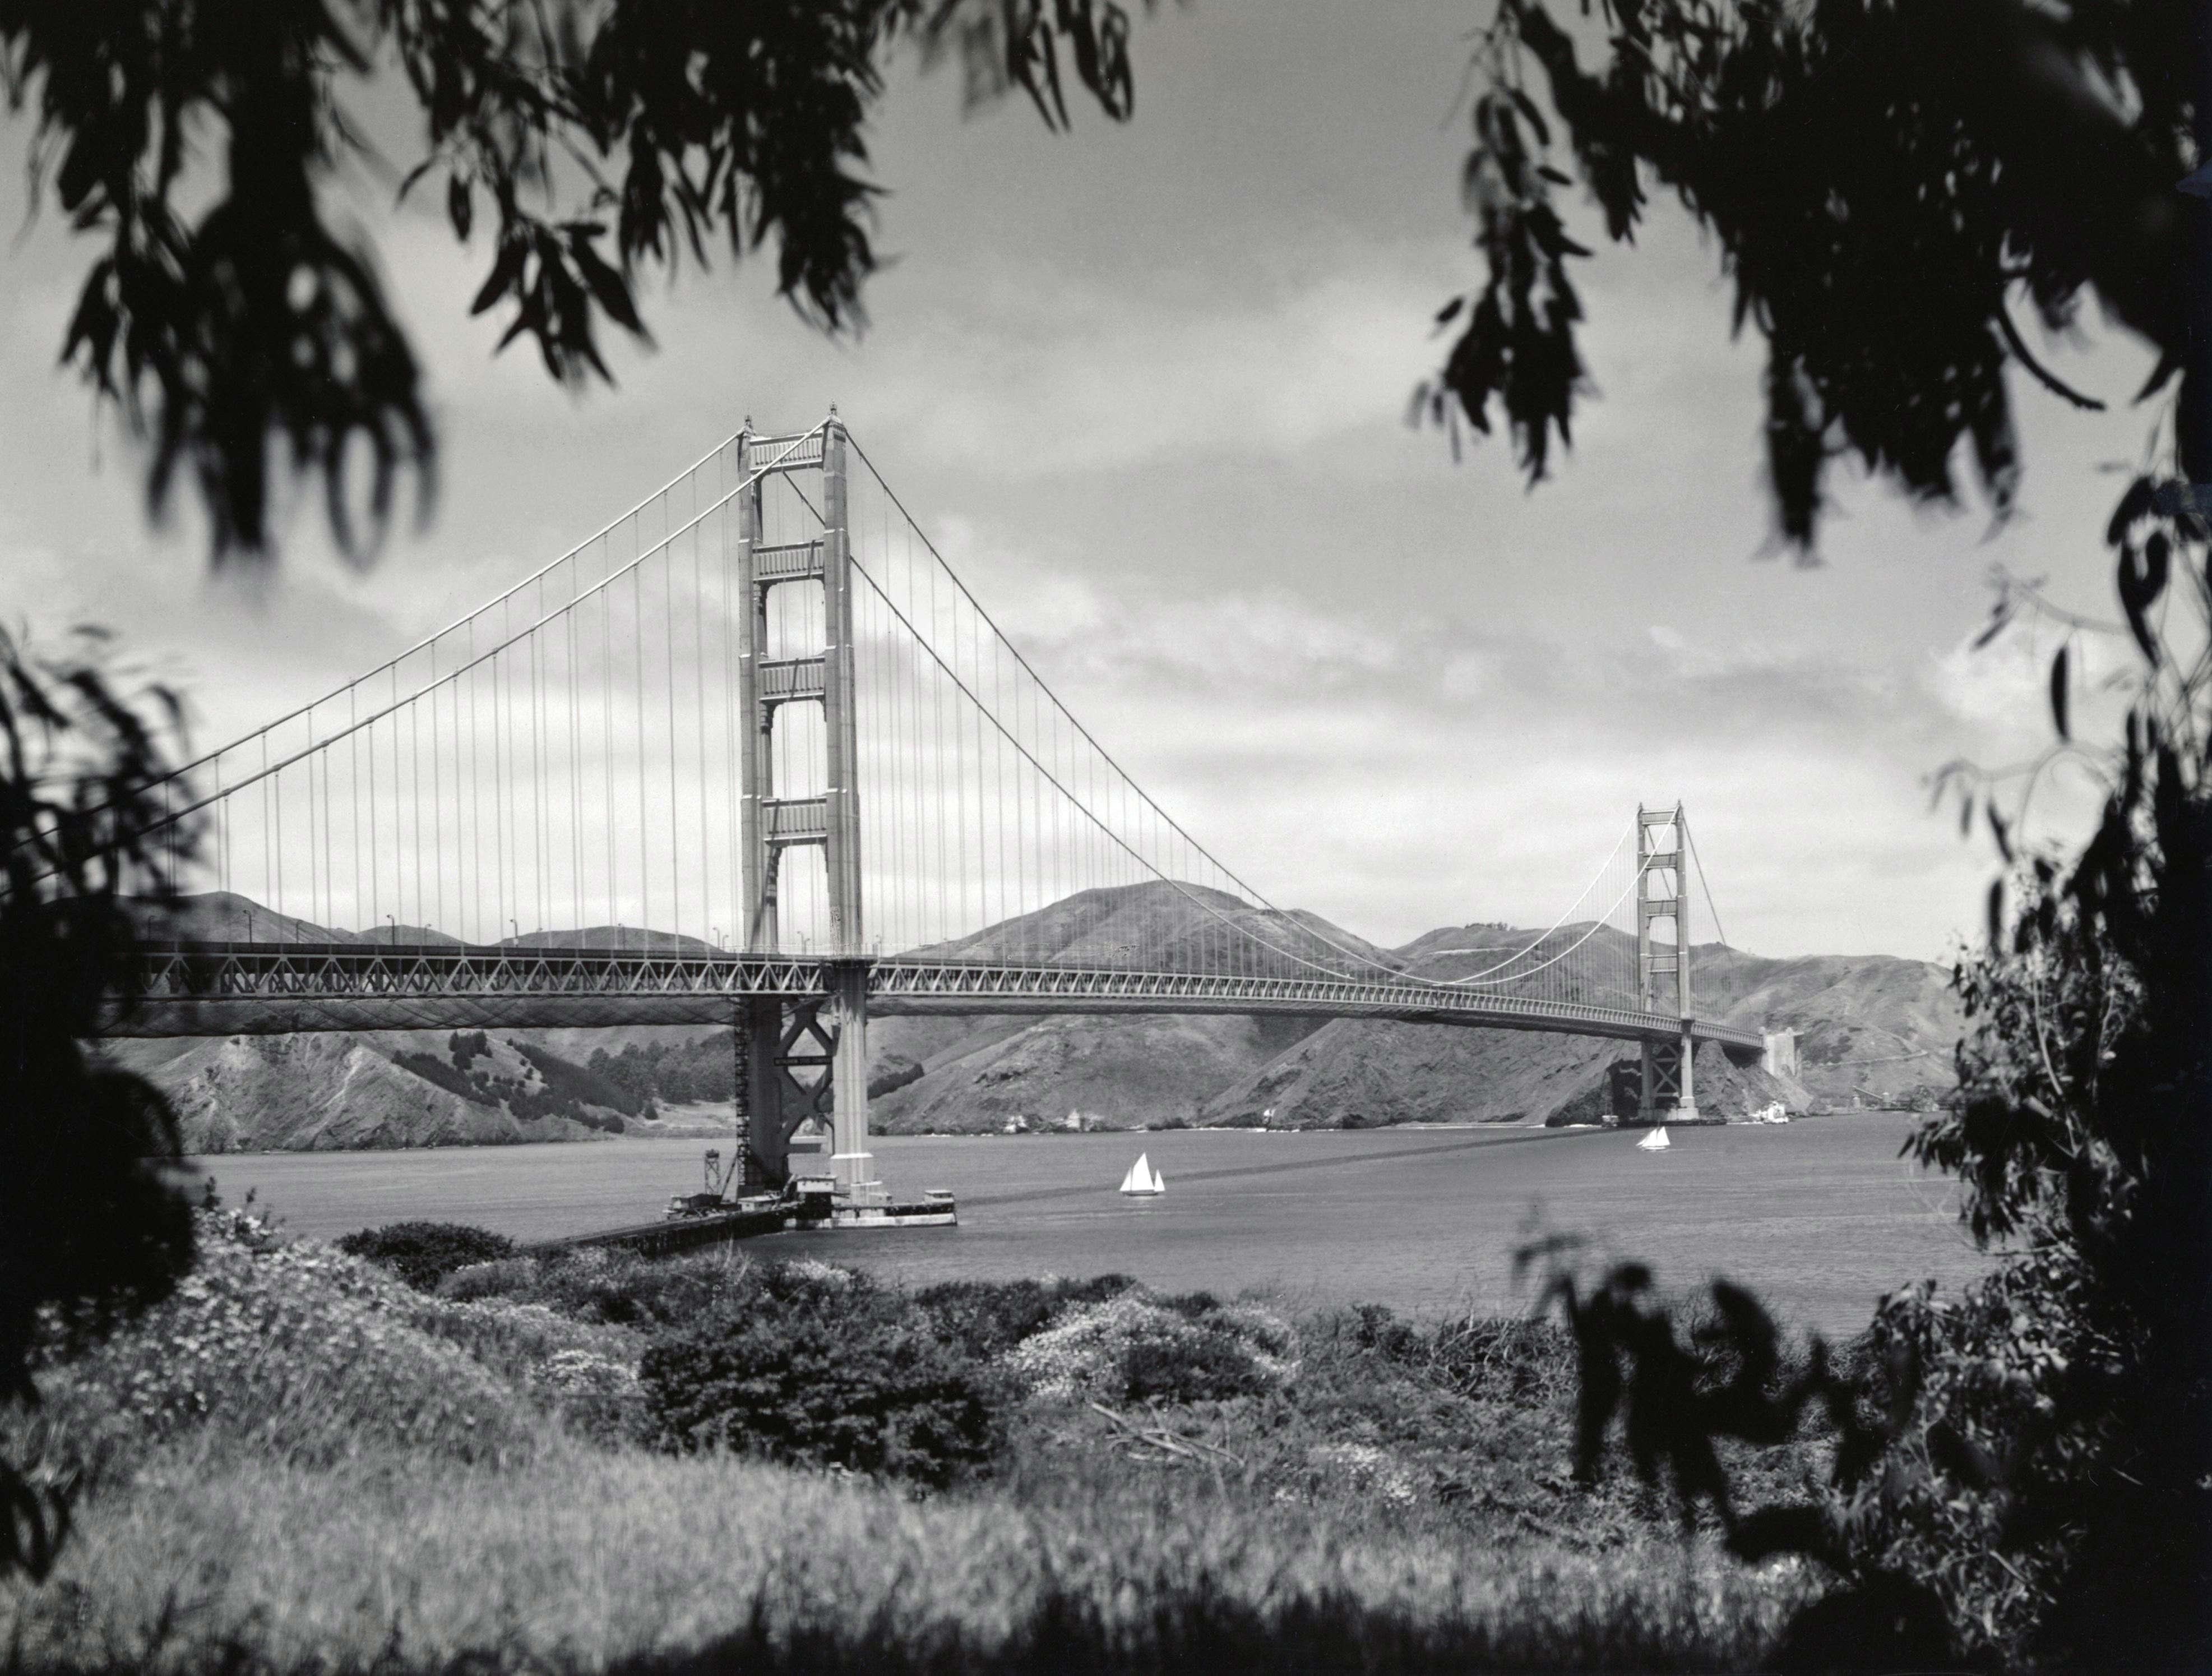 Slide 2 of 55: San Francisco, California: May, 1937 The nearly completed Golden Gate Bridge as seen from the Presidio with the Marin Headlands in the background. The workers' safety netting can still be seen hanging under the roadbed on parts of the bridge.